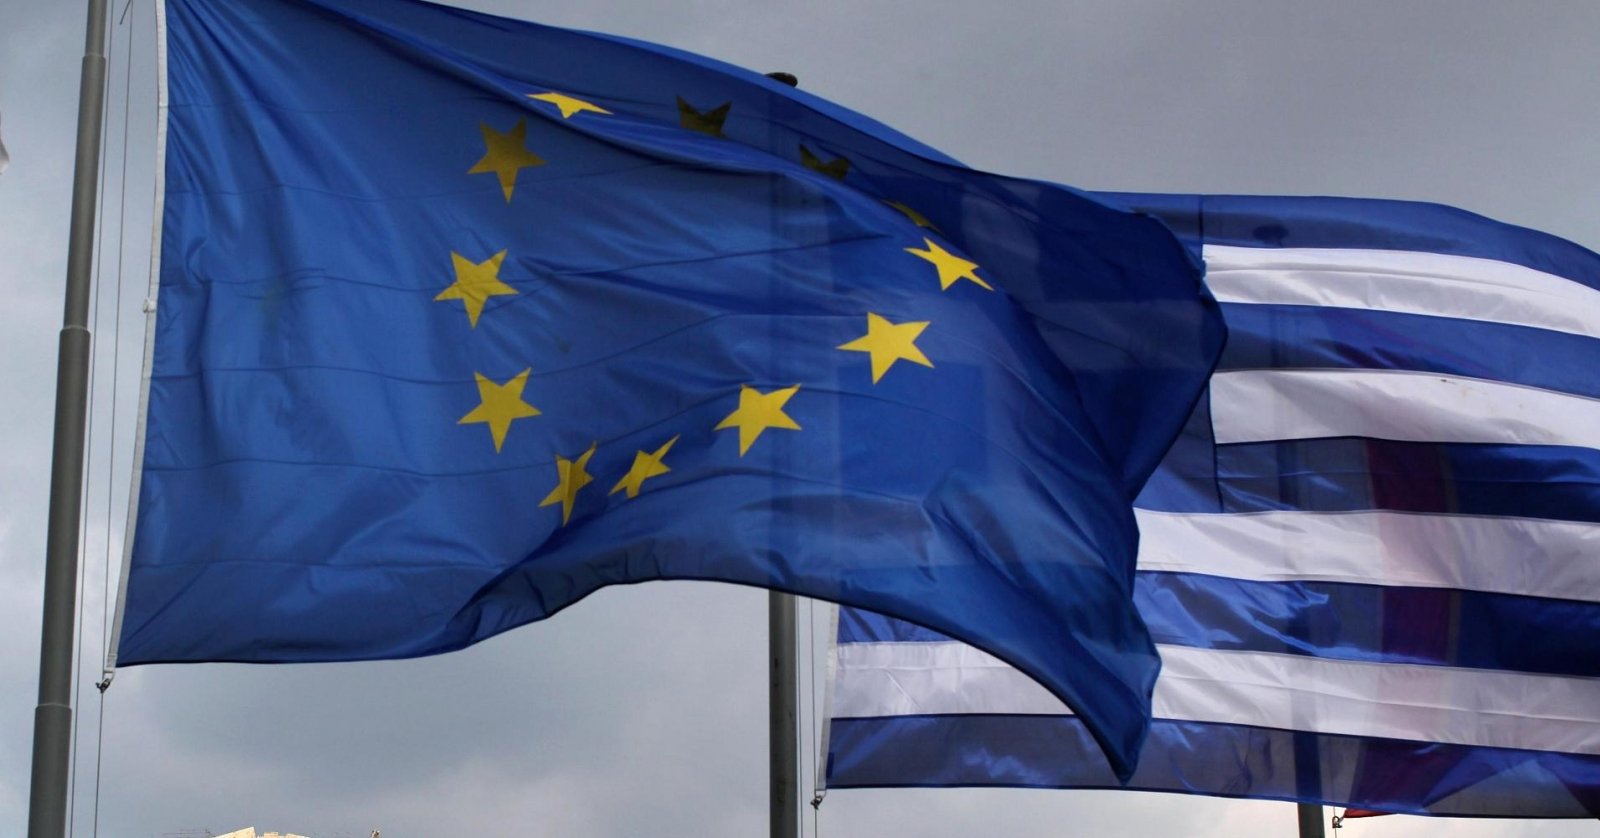 Greek banks in focus after ECB stops accepting its bonds